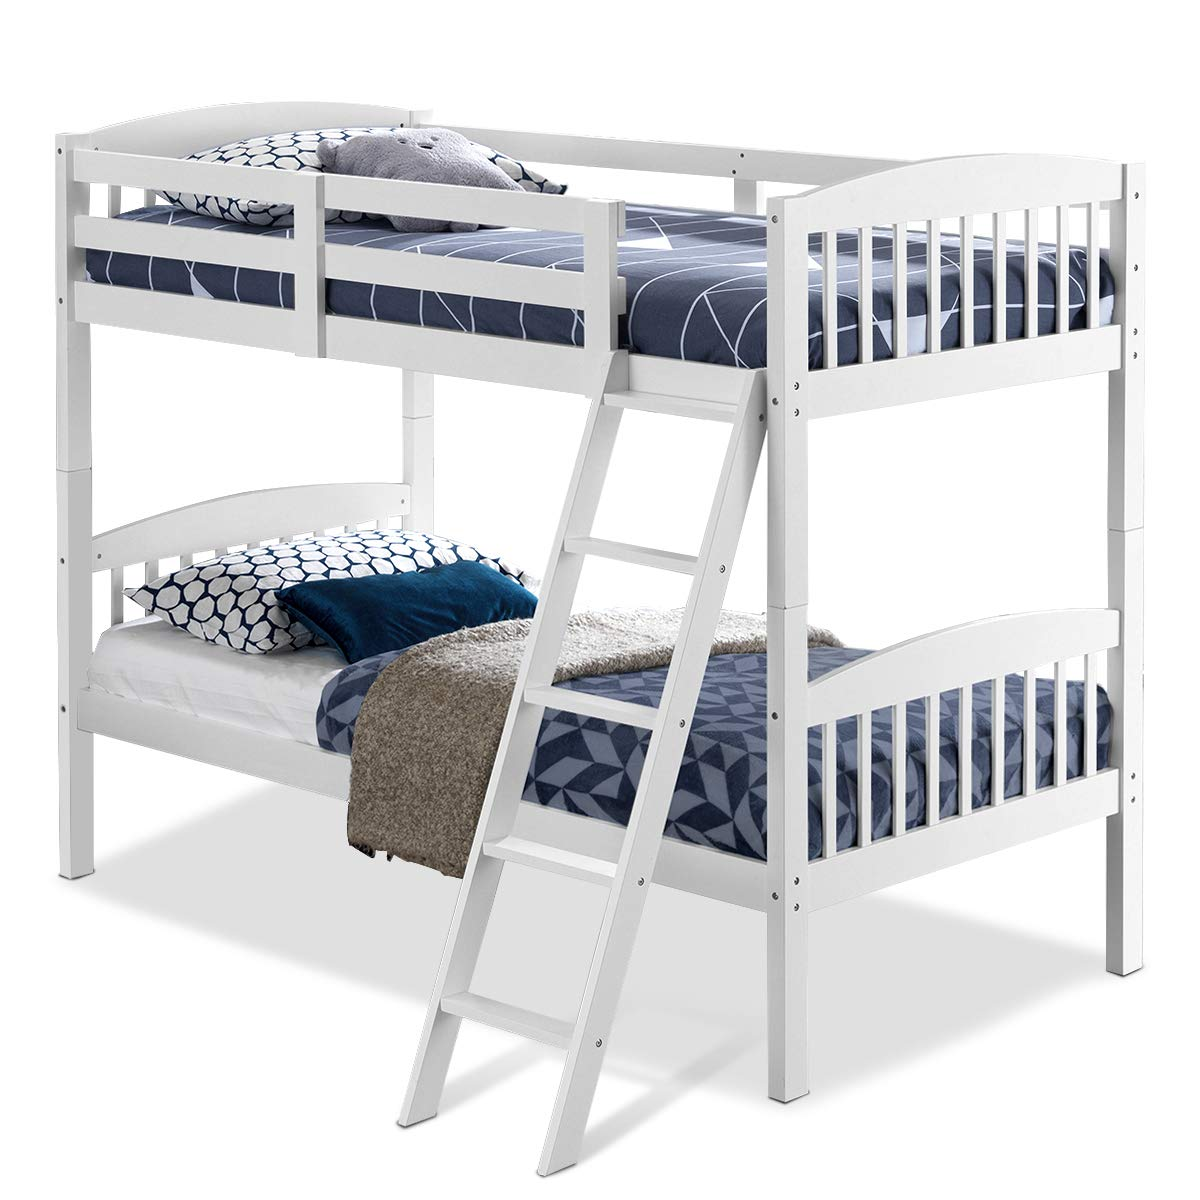 Costzon Twin Over Twin Bunk Beds, Convertible Into Two Individual Solid Wood Beds, Children Twin Sleeping Bedroom Furniture W/Ladder and Safety Rail for Kids Boys & Girl (White)